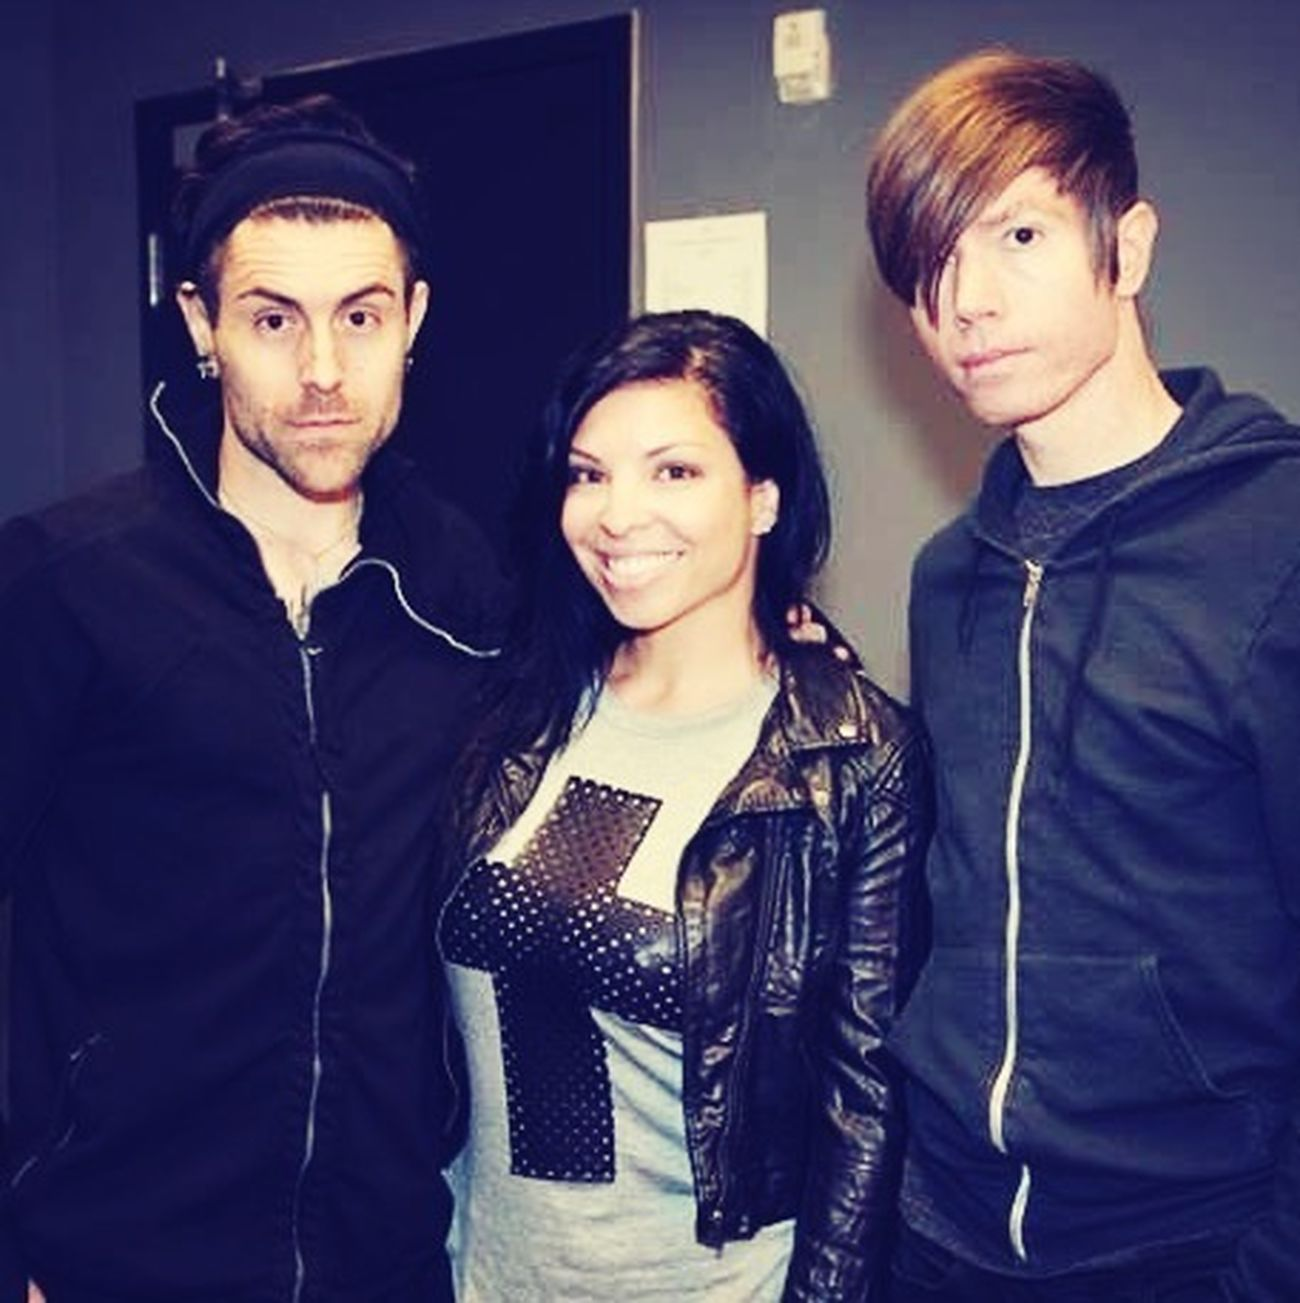 It was an honor to finally chat up Davey & Jade! @AFI Houston